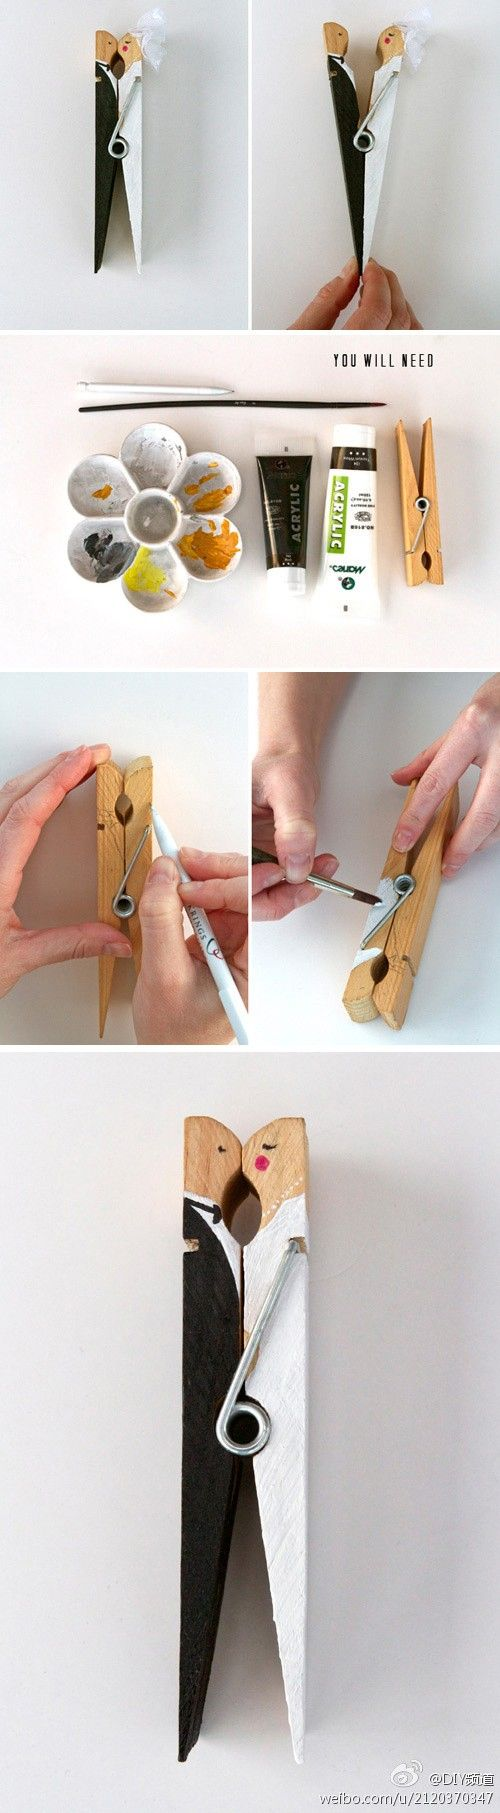 diy Wedding clothes pin. Such a cute idea for wedding favours in the big day!!: